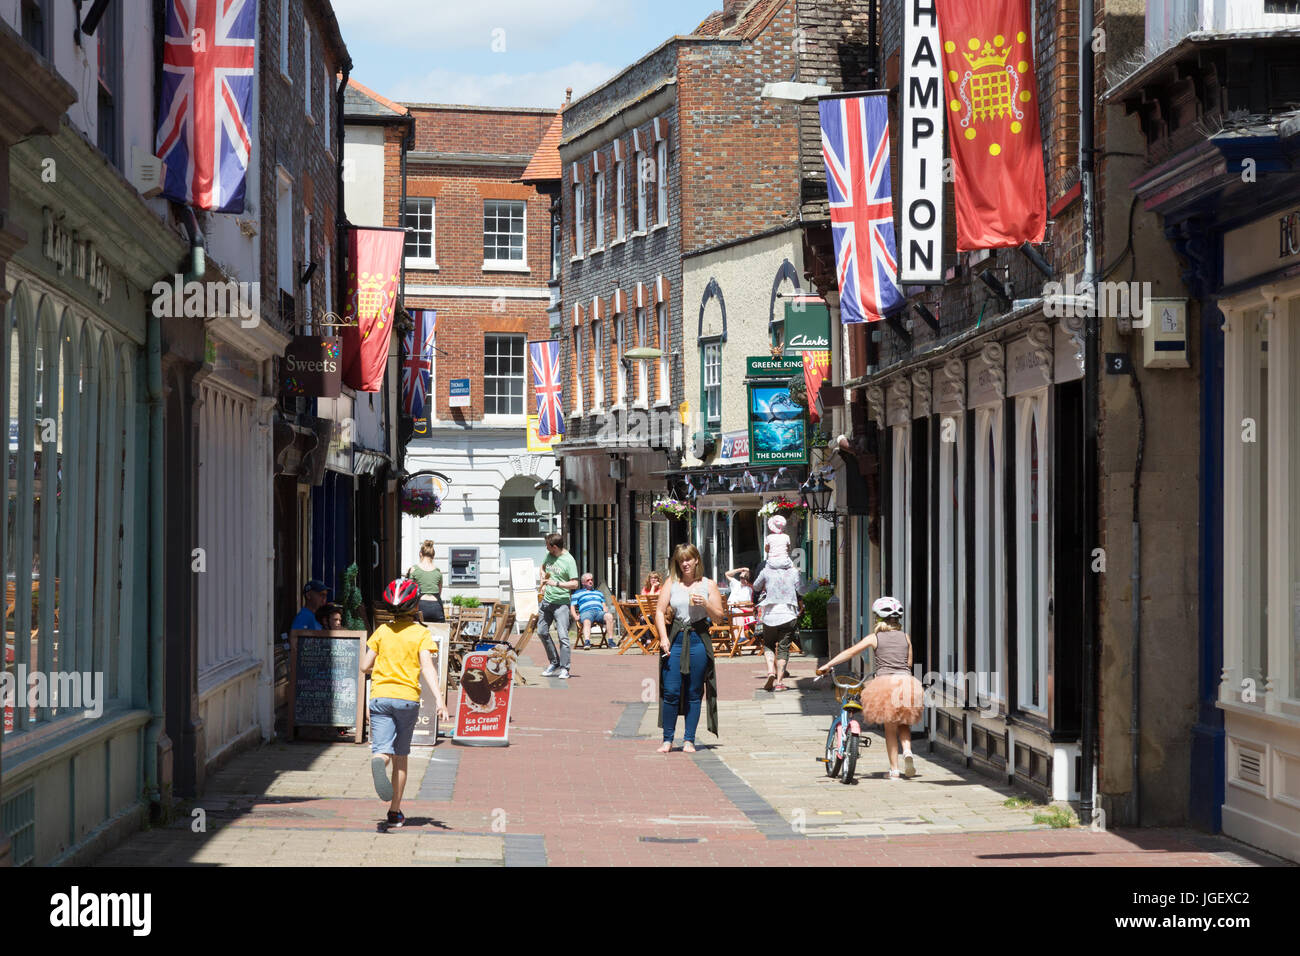 Wallingford town centre, Wallingford, Oxfordshire UK - Stock Image